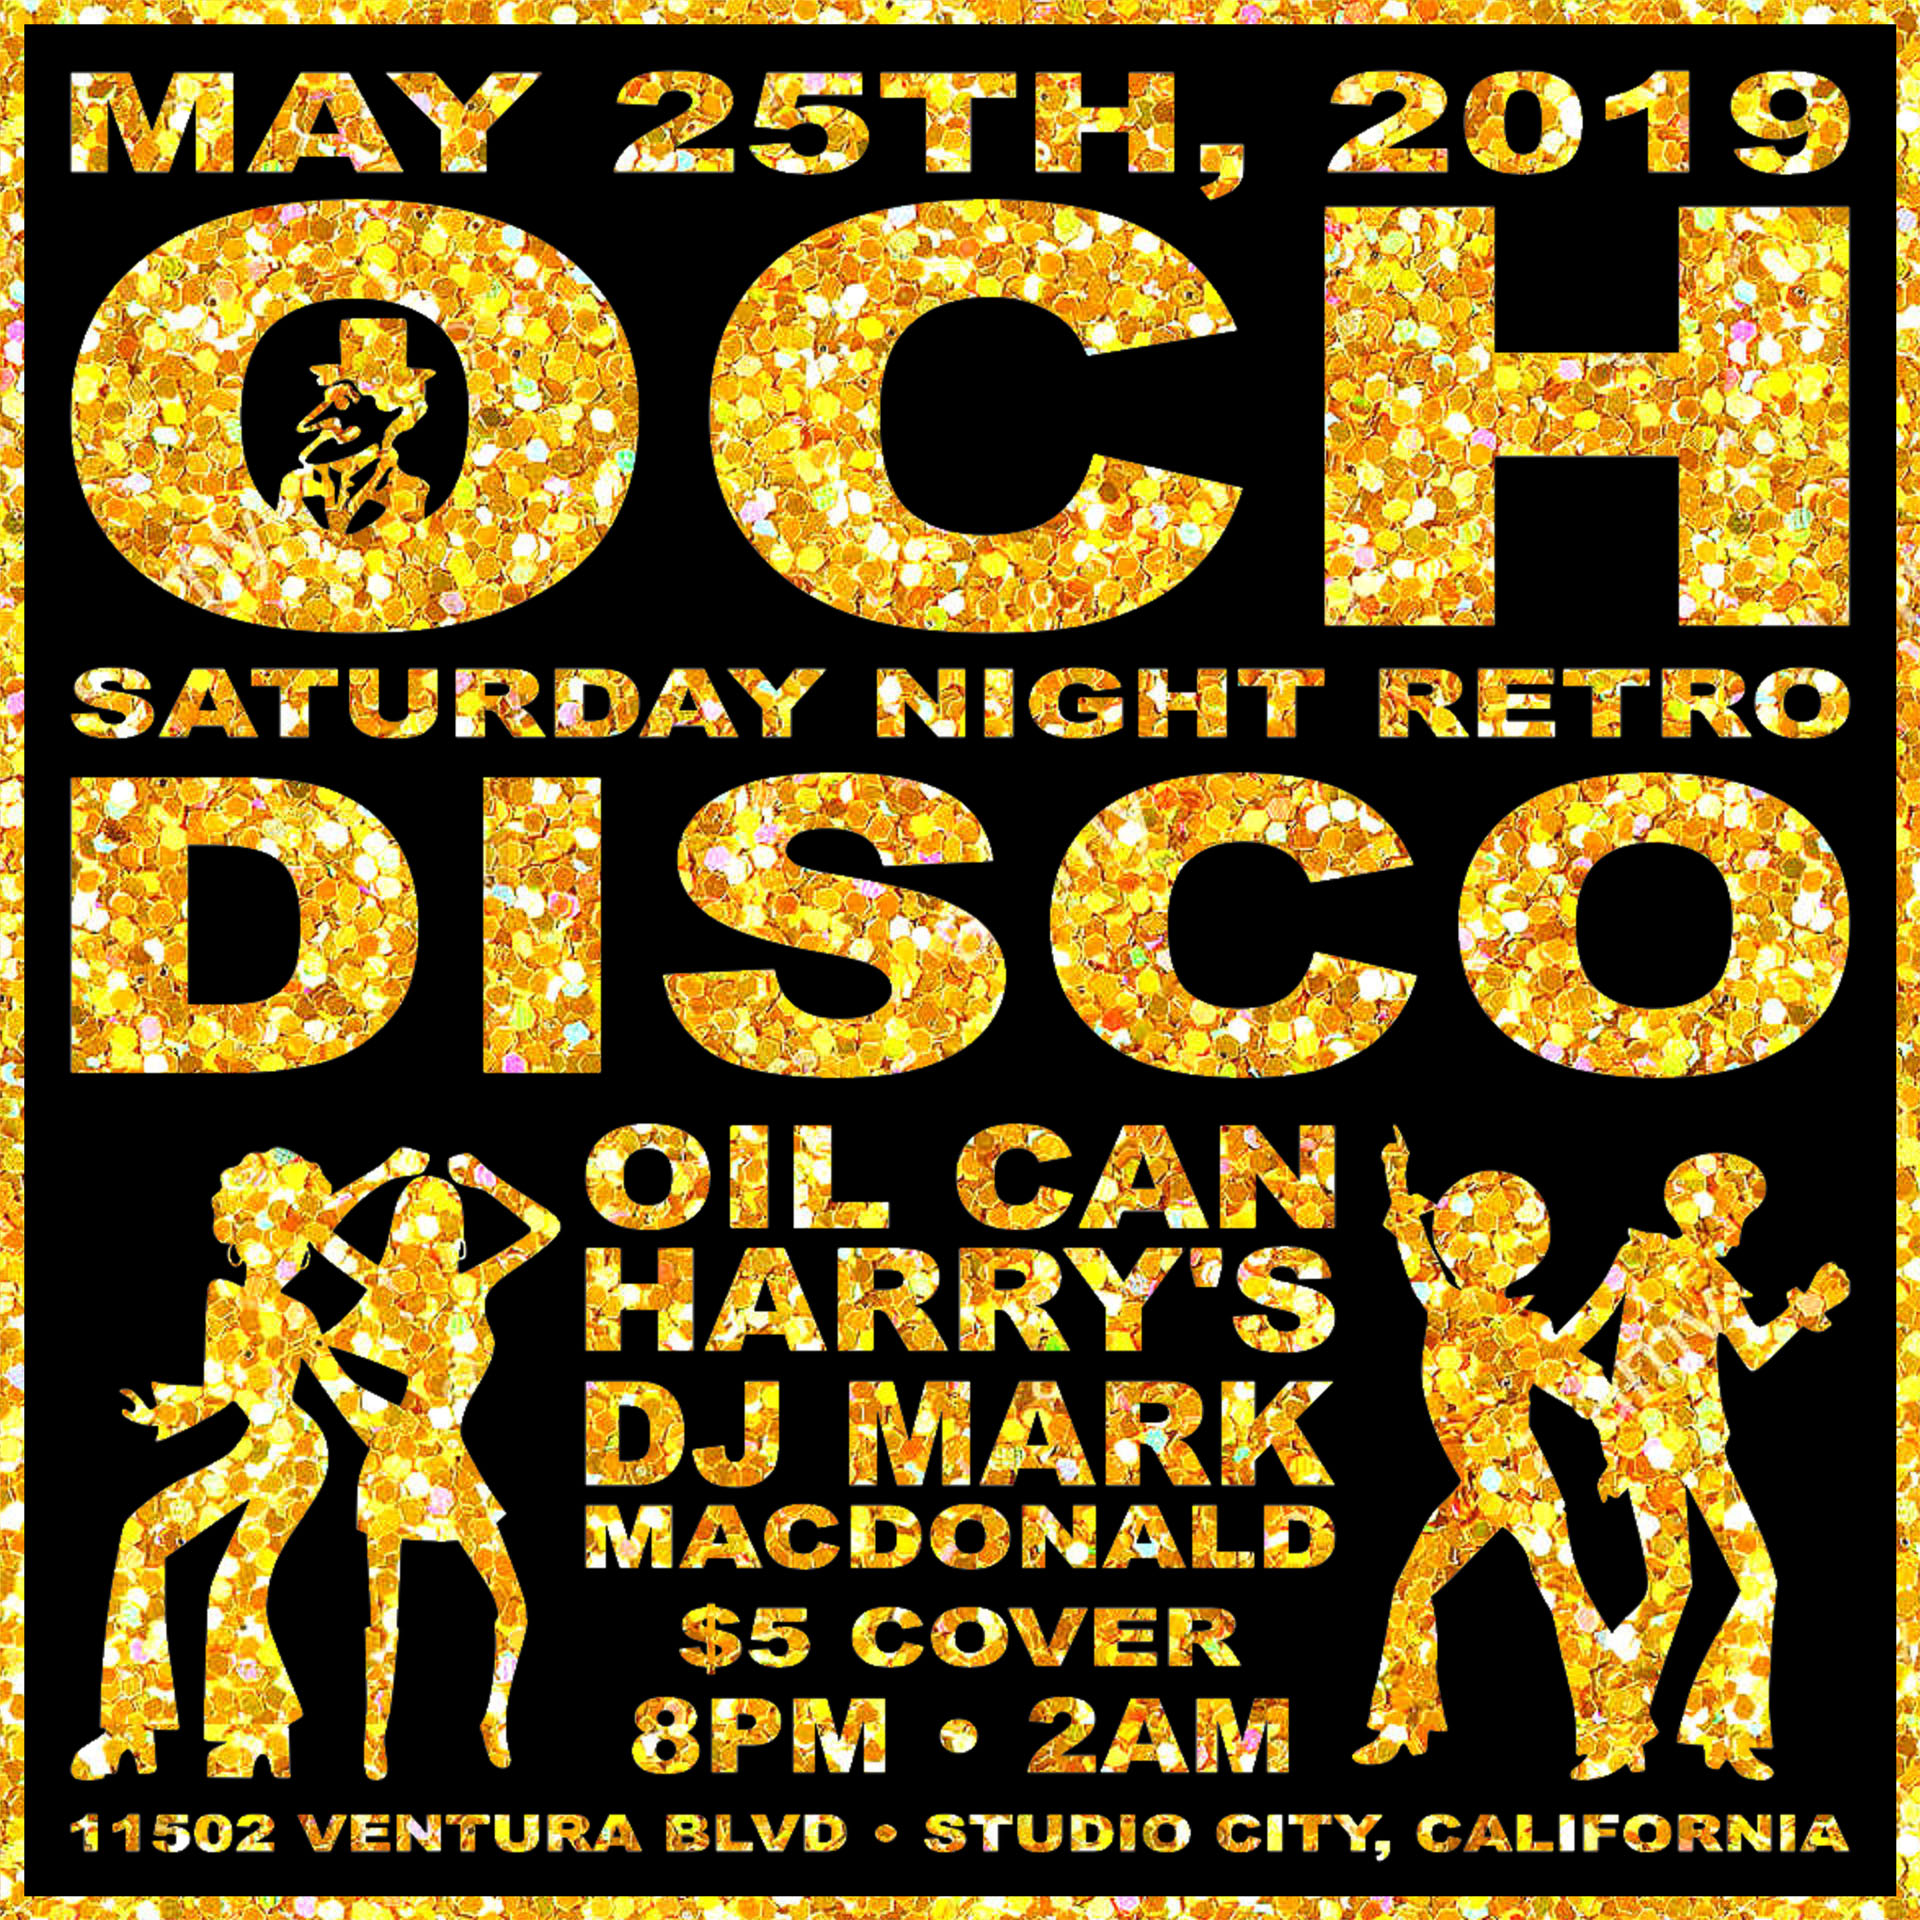 Oil Can Harry's Hosts DJ MARK MACDONALD from Las Vegas for RETRO DISCO: Saturday, May 25, 2019! 8:00 PM to 2:00 AM! $5.00 Cover.